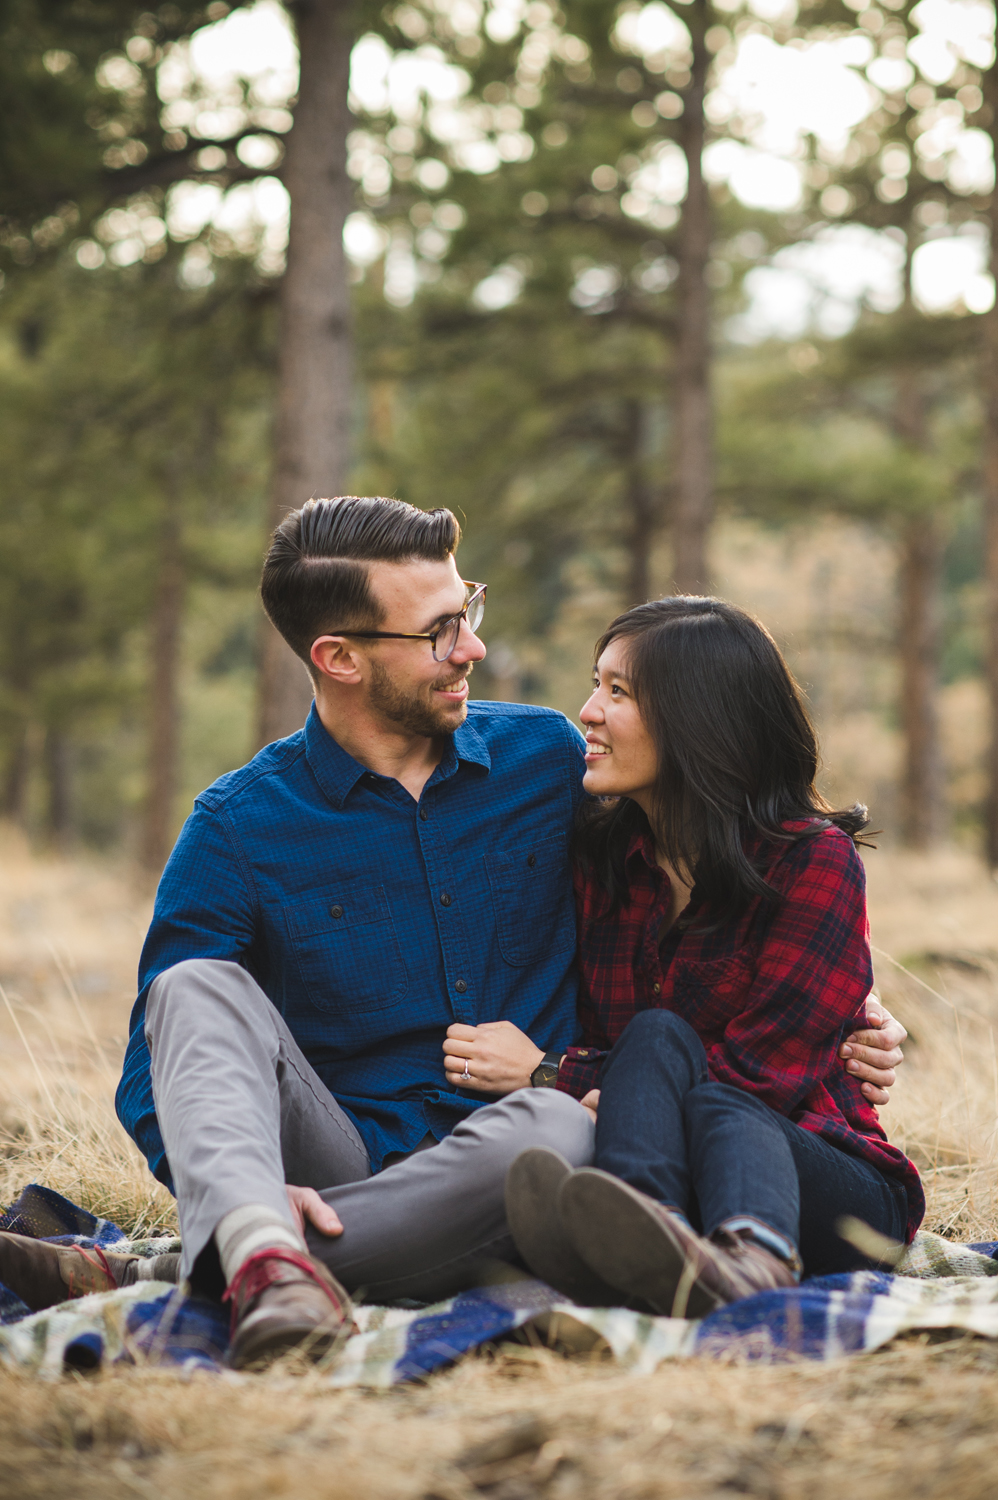 TiffanyandMark_Engaged_0798_squarespace.jpg